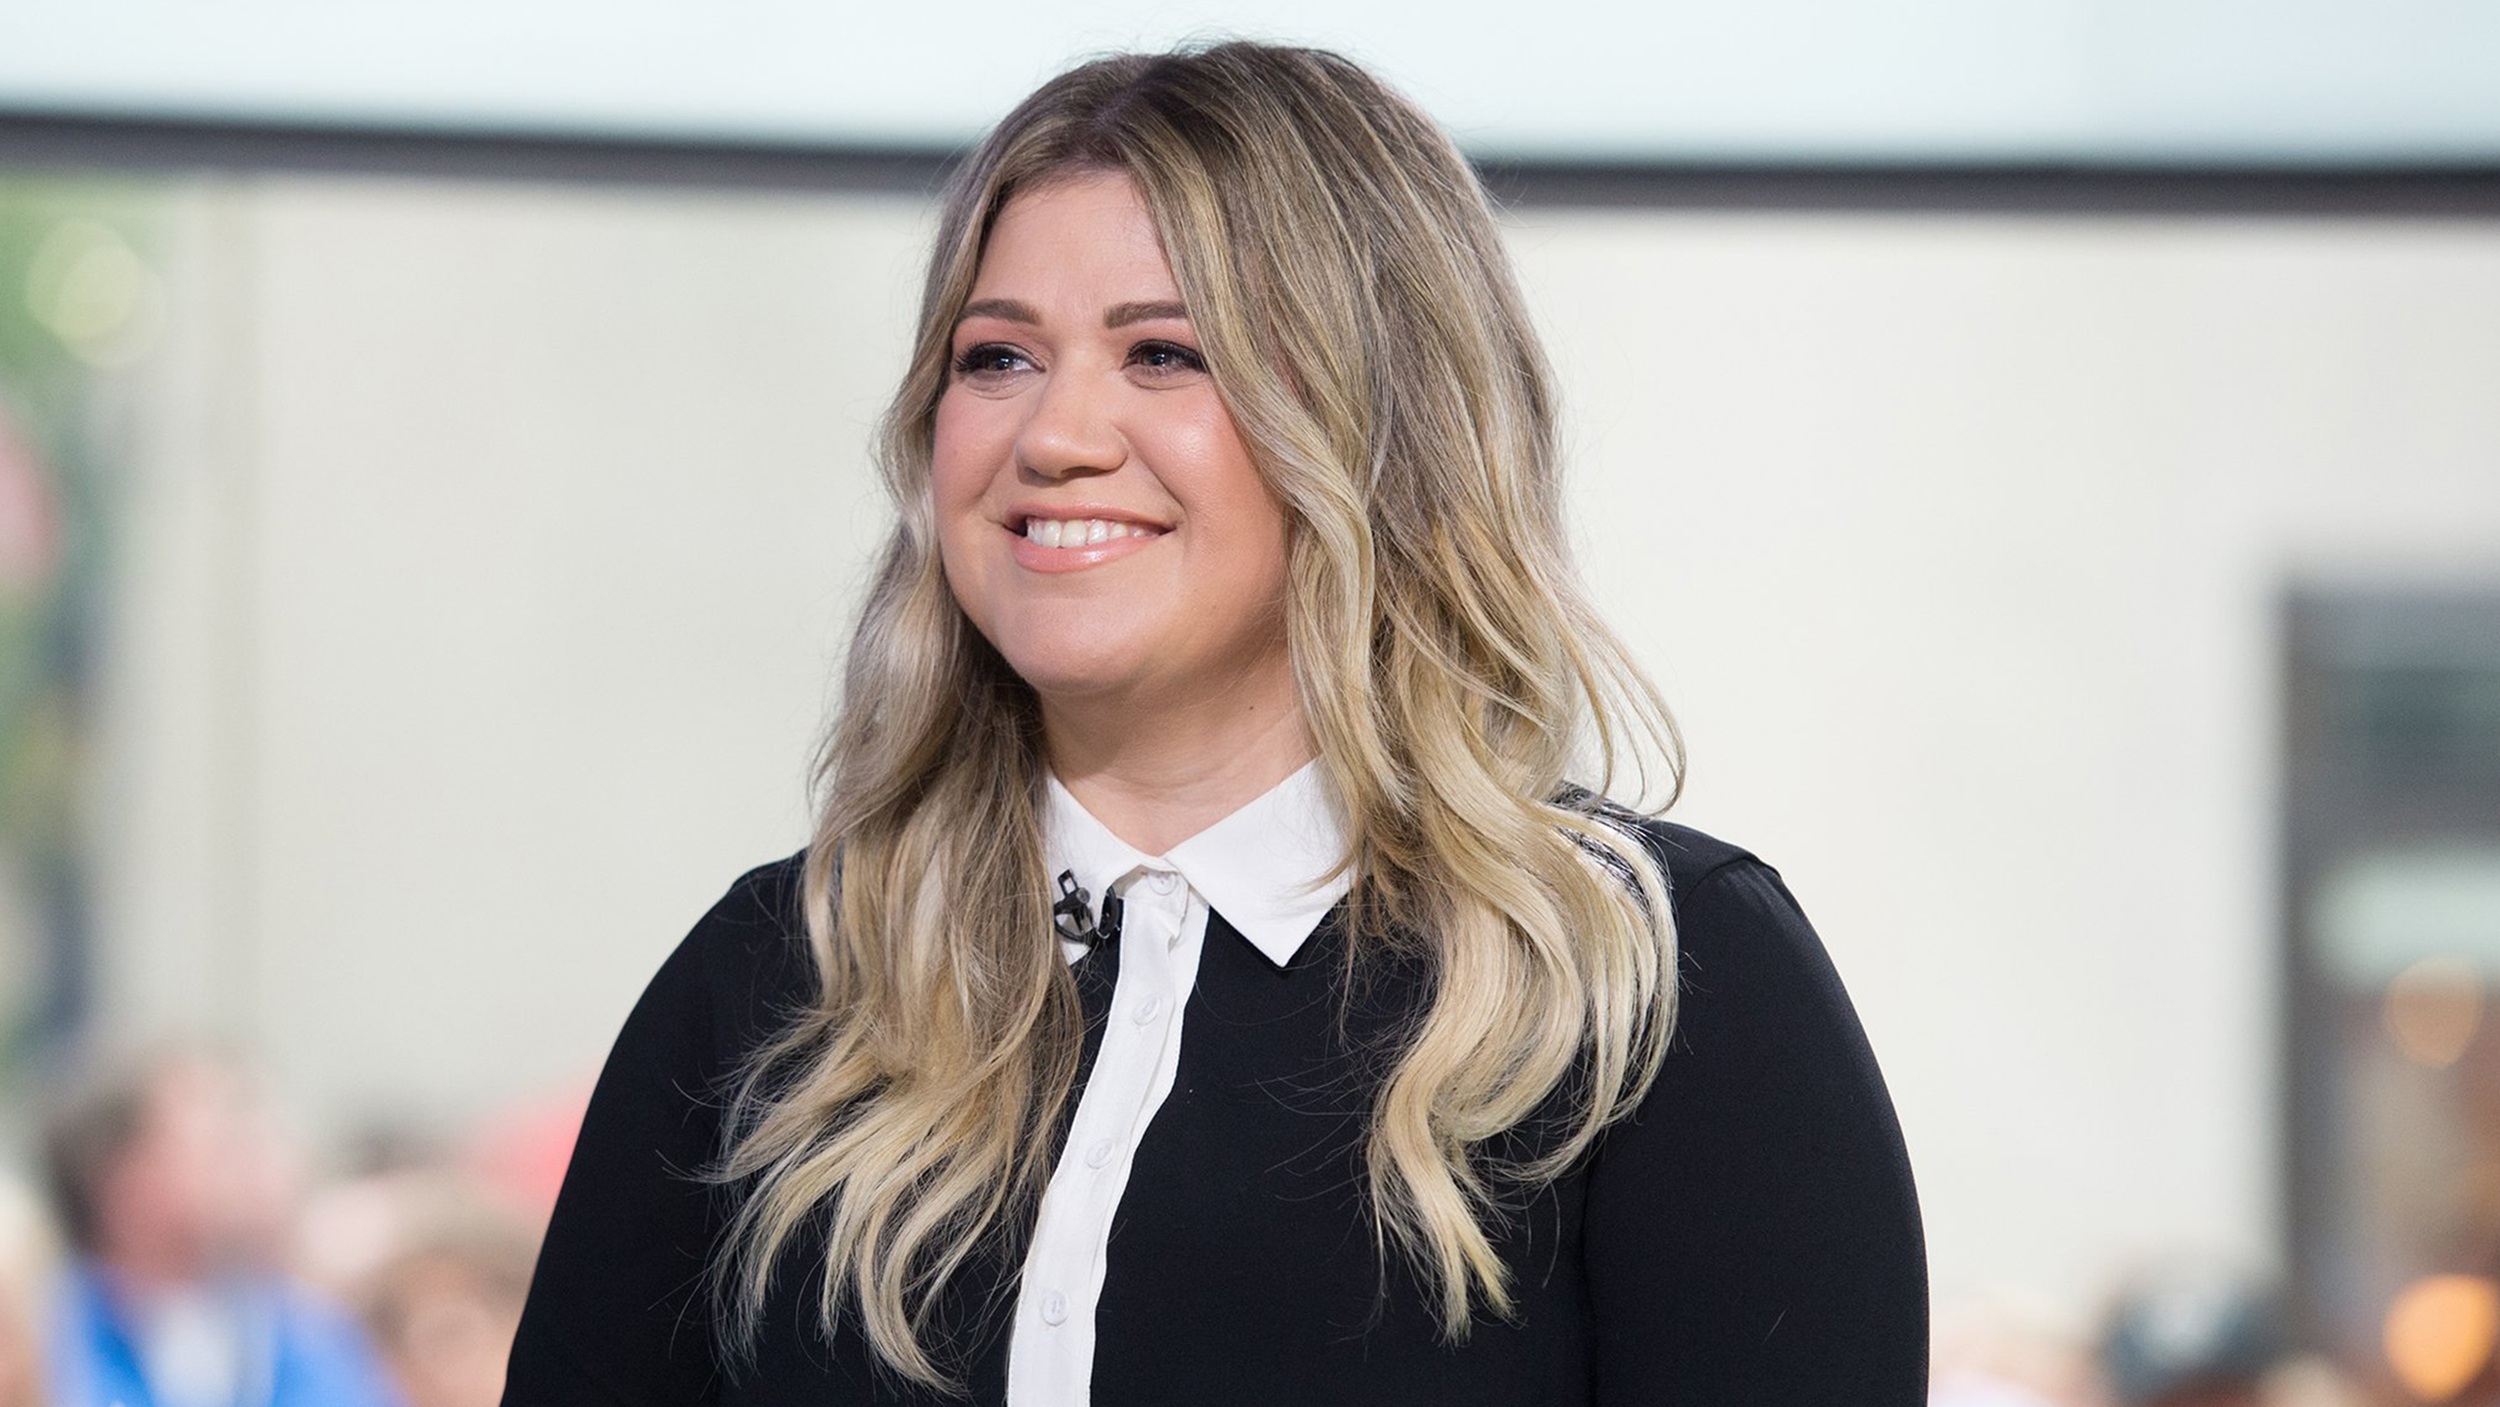 Kelly Clarkson Named Coach For 14th Season Of The Voice